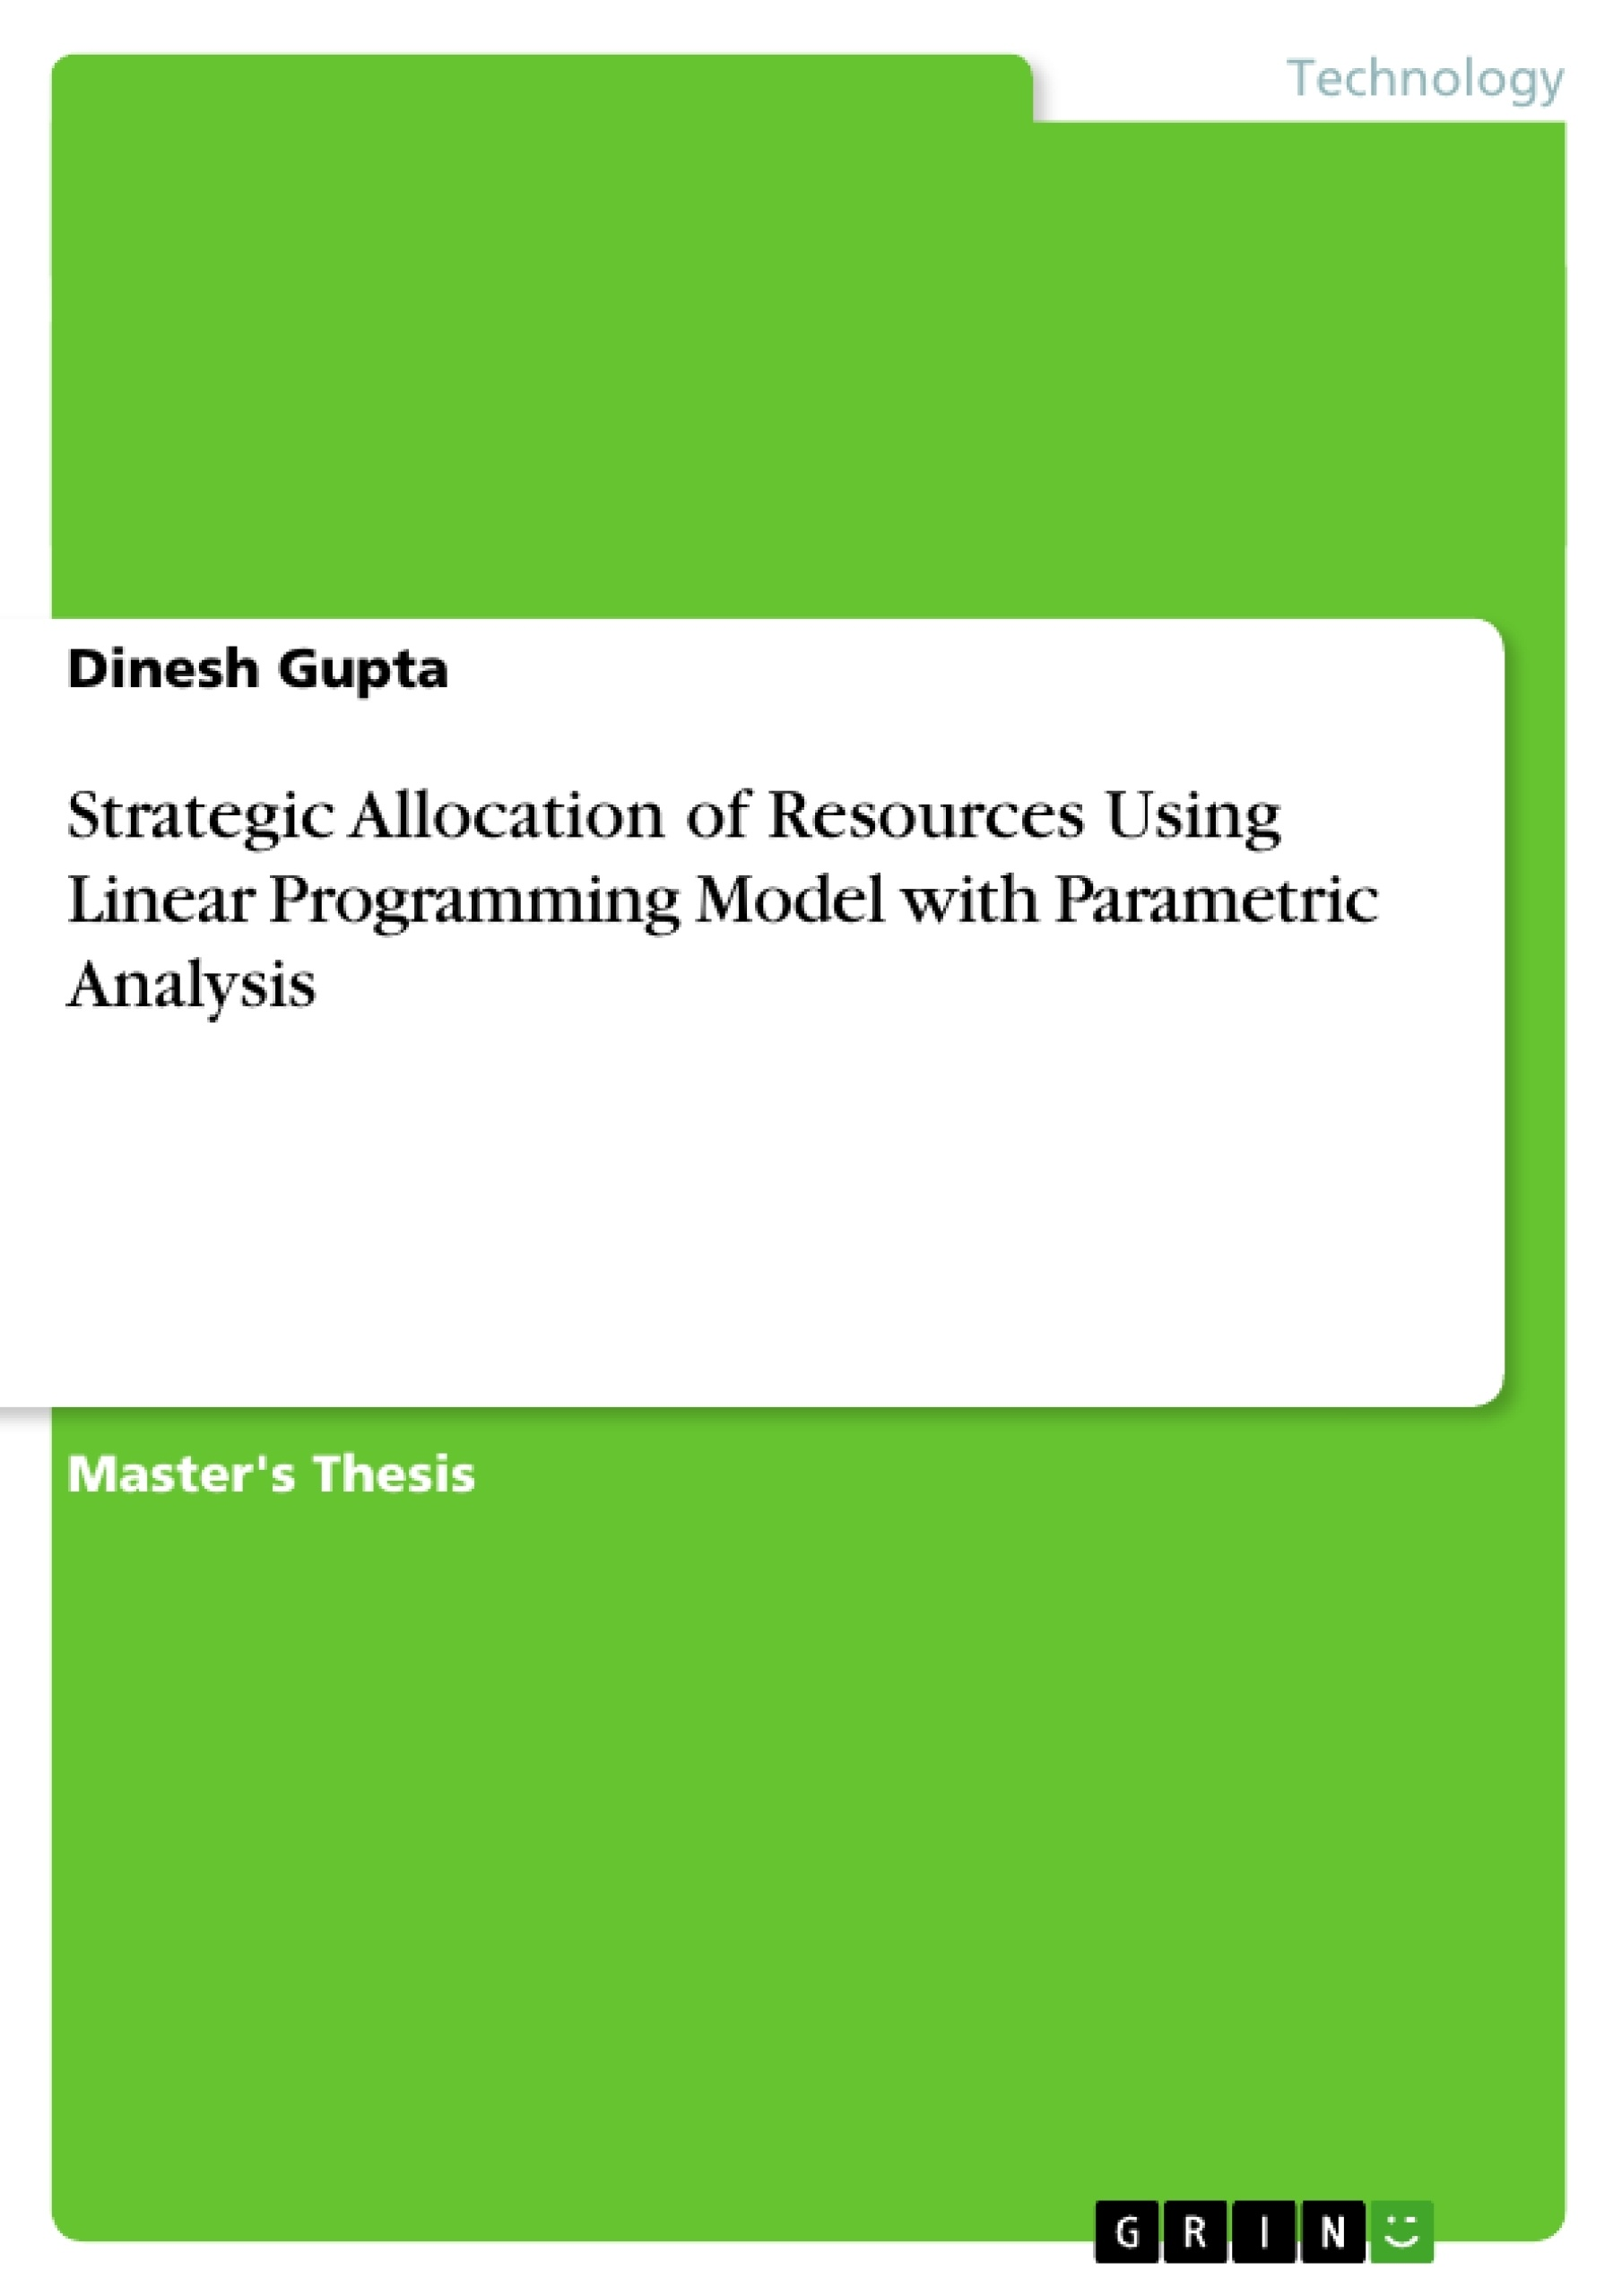 Title: Strategic Allocation of Resources Using Linear Programming Model with Parametric Analysis